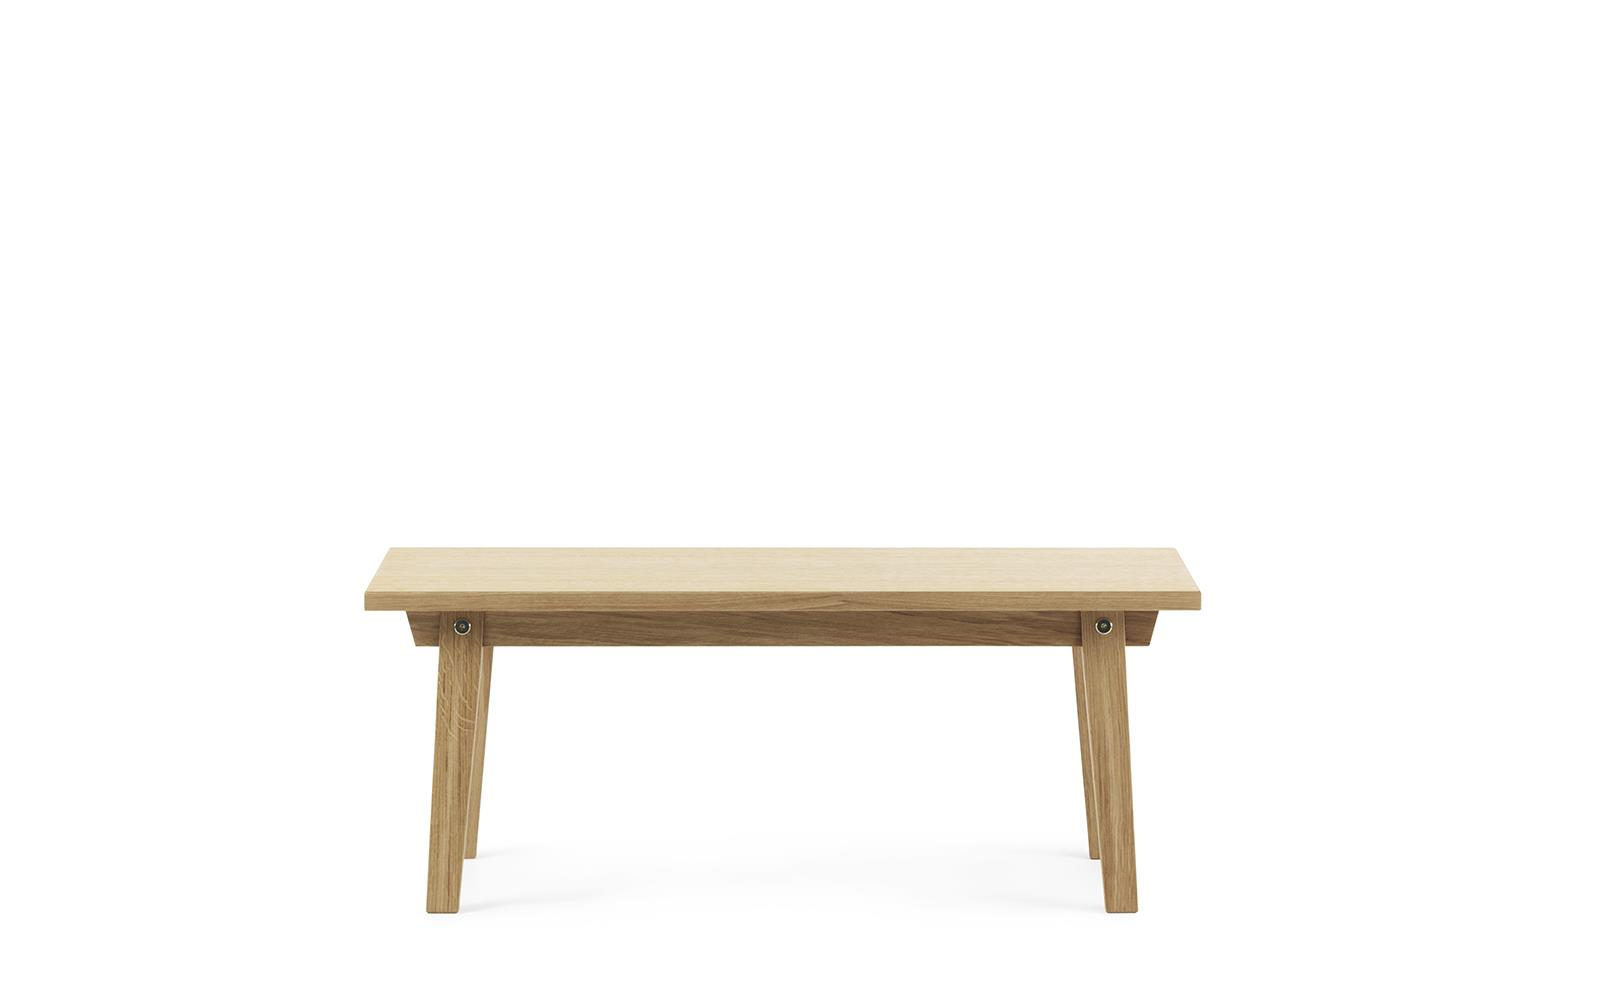 Slice Coffee Table Vol 2 42 x 100 cm2